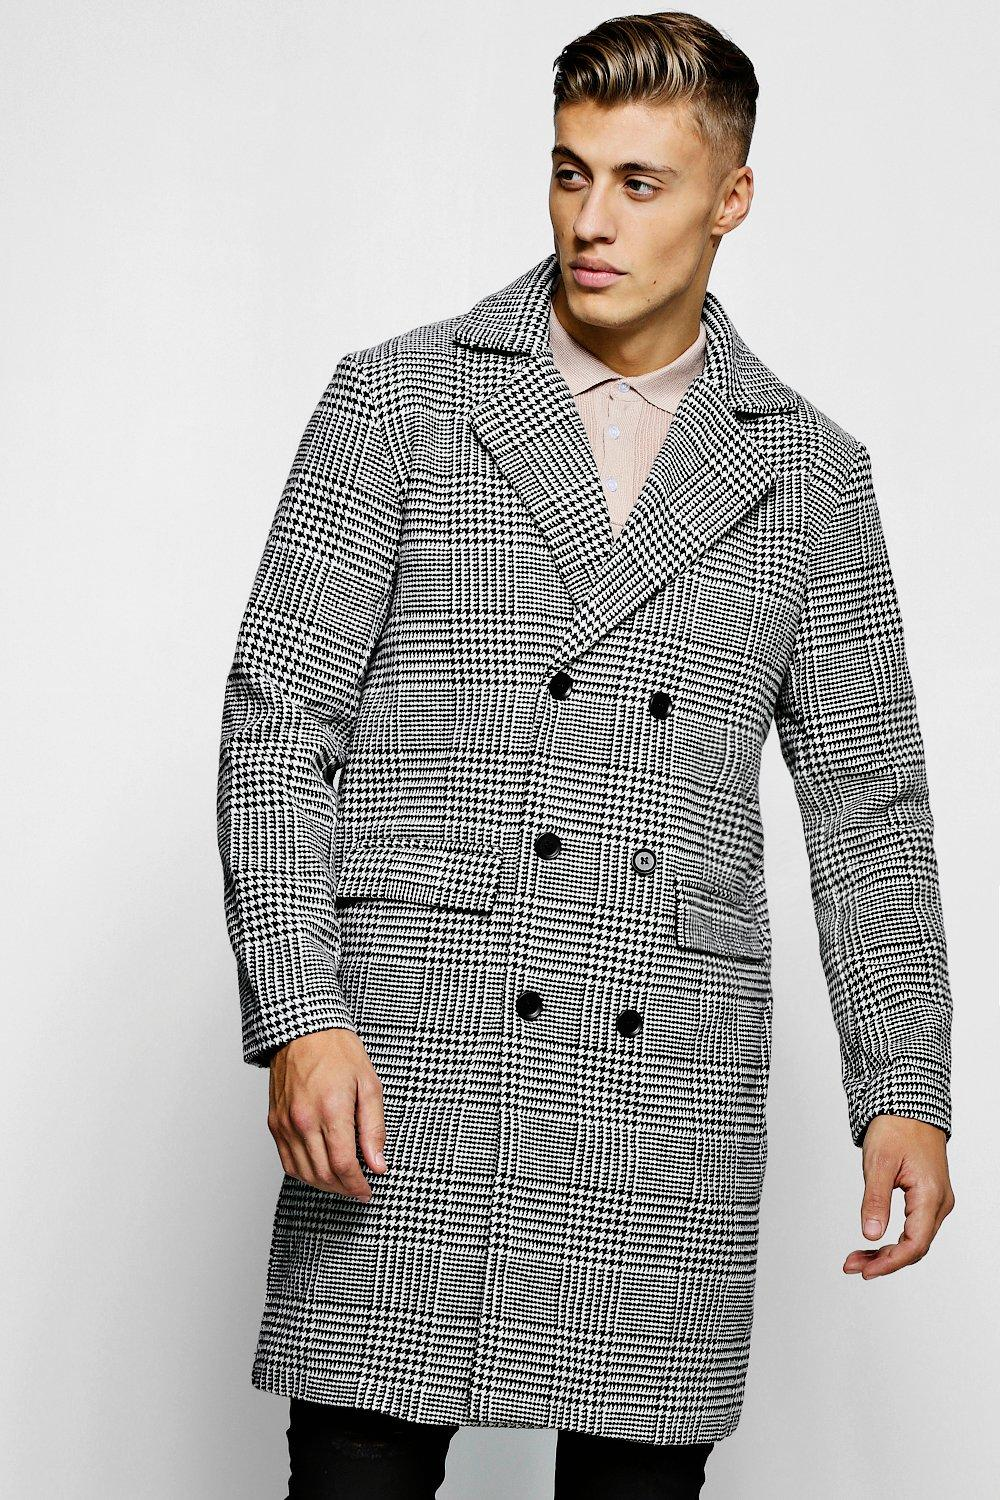 72e60fba496b The Best and Most Stylish Mens Overcoats For This Season – Fupping